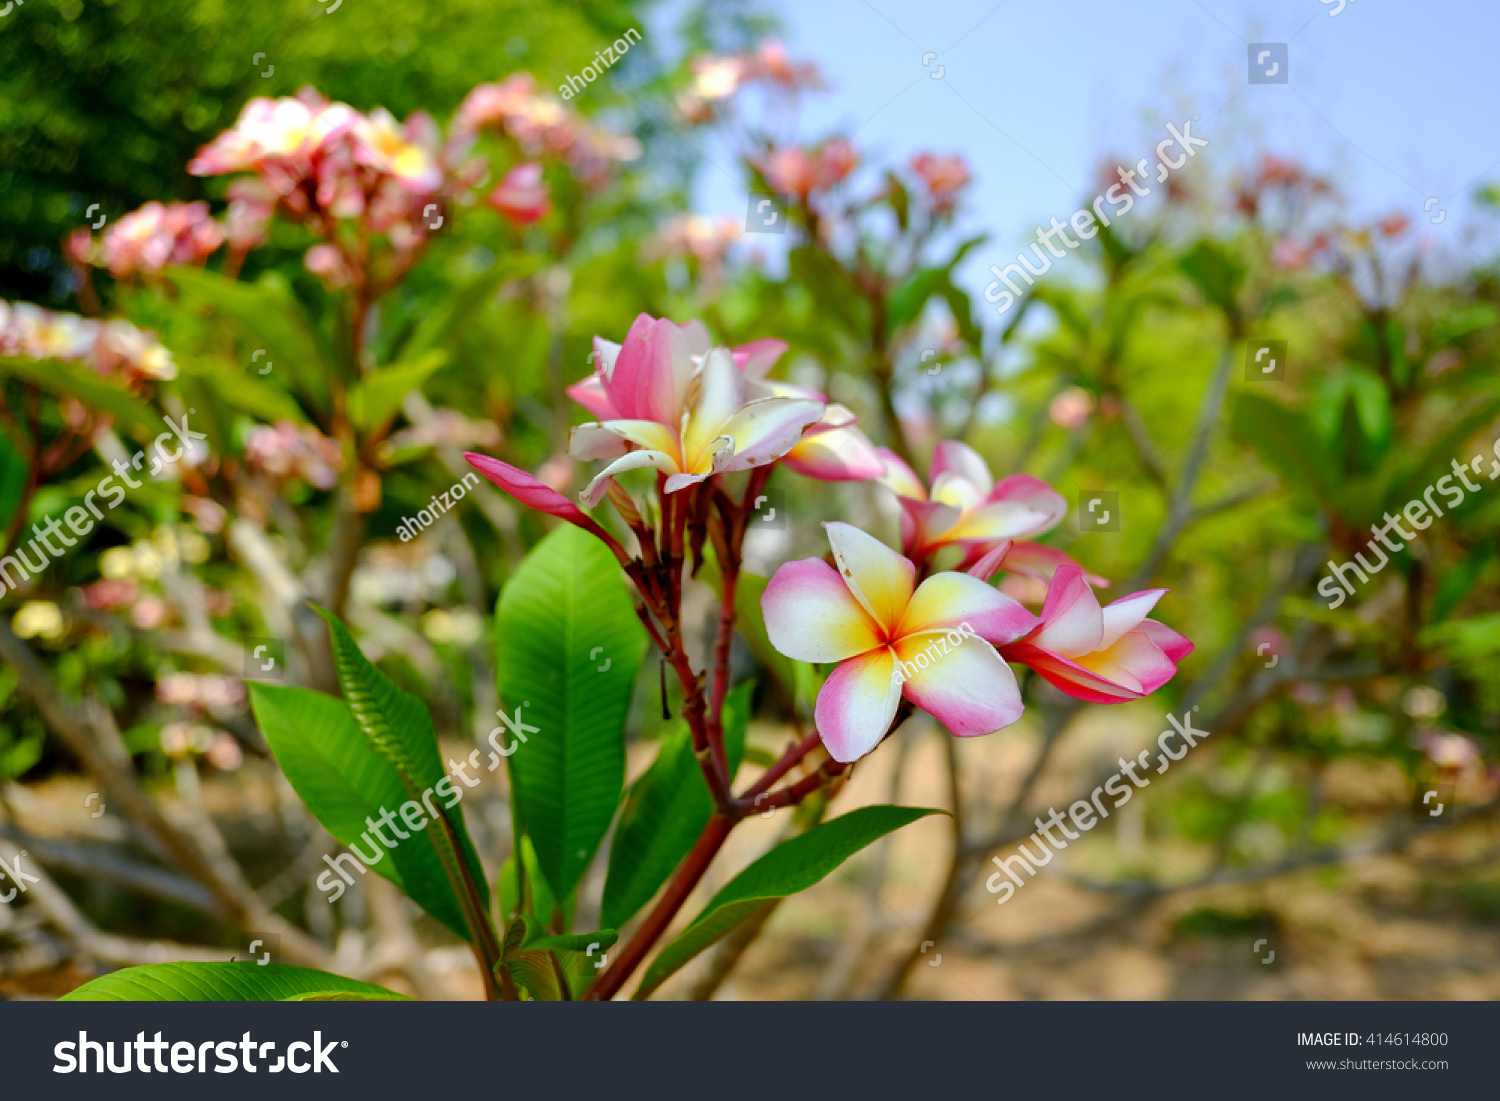 Royalty Free Branch Of Tropical Pink Flowers 414614800 Stock Photo